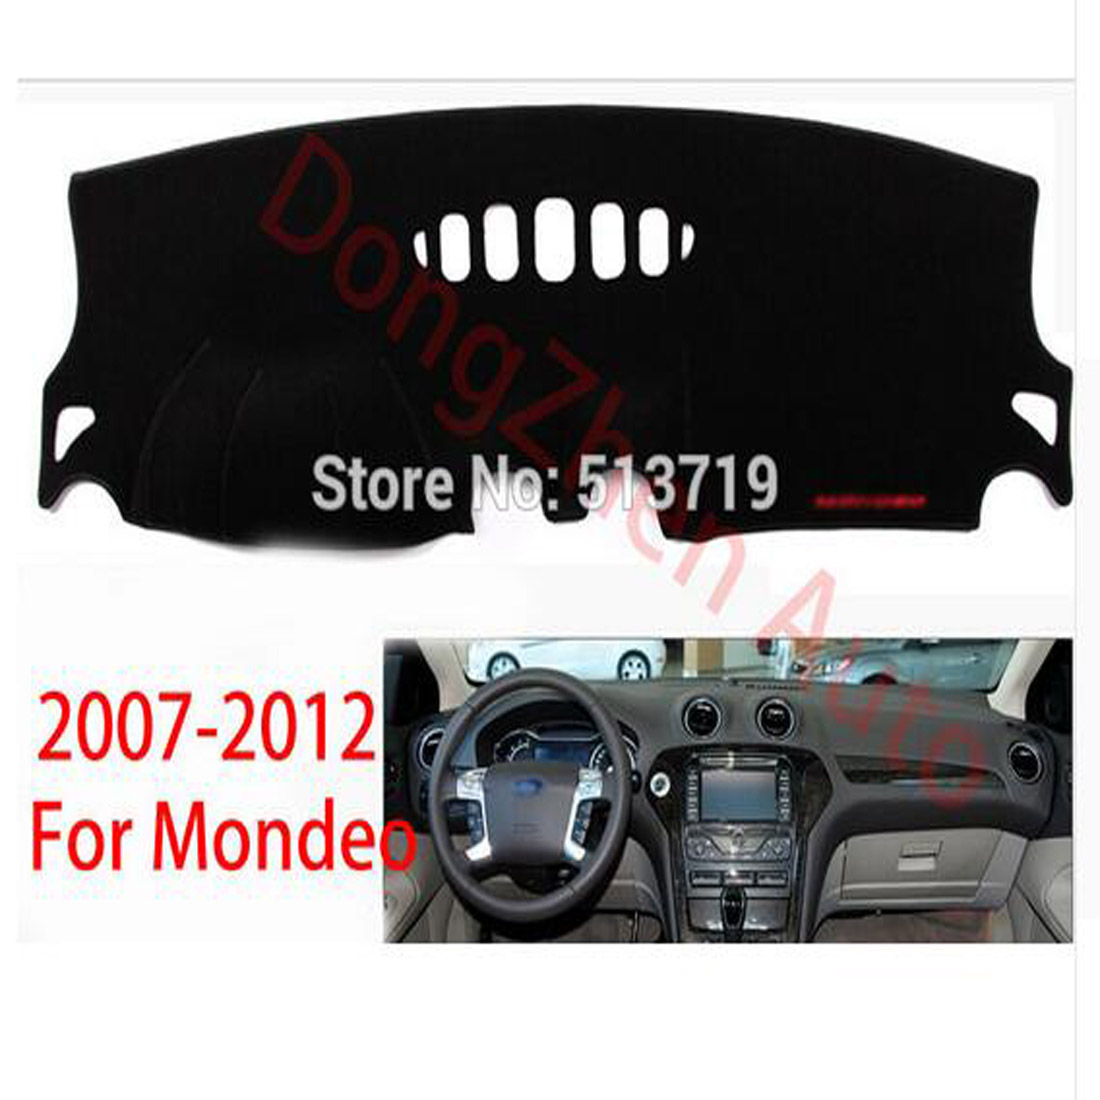 Dongzhen For Ford Mondeo 2007-2012 Right Hand Drive Auto Car Dashboard Avoid Light Pad Instrument Platform Desk Cover Mat Carpet